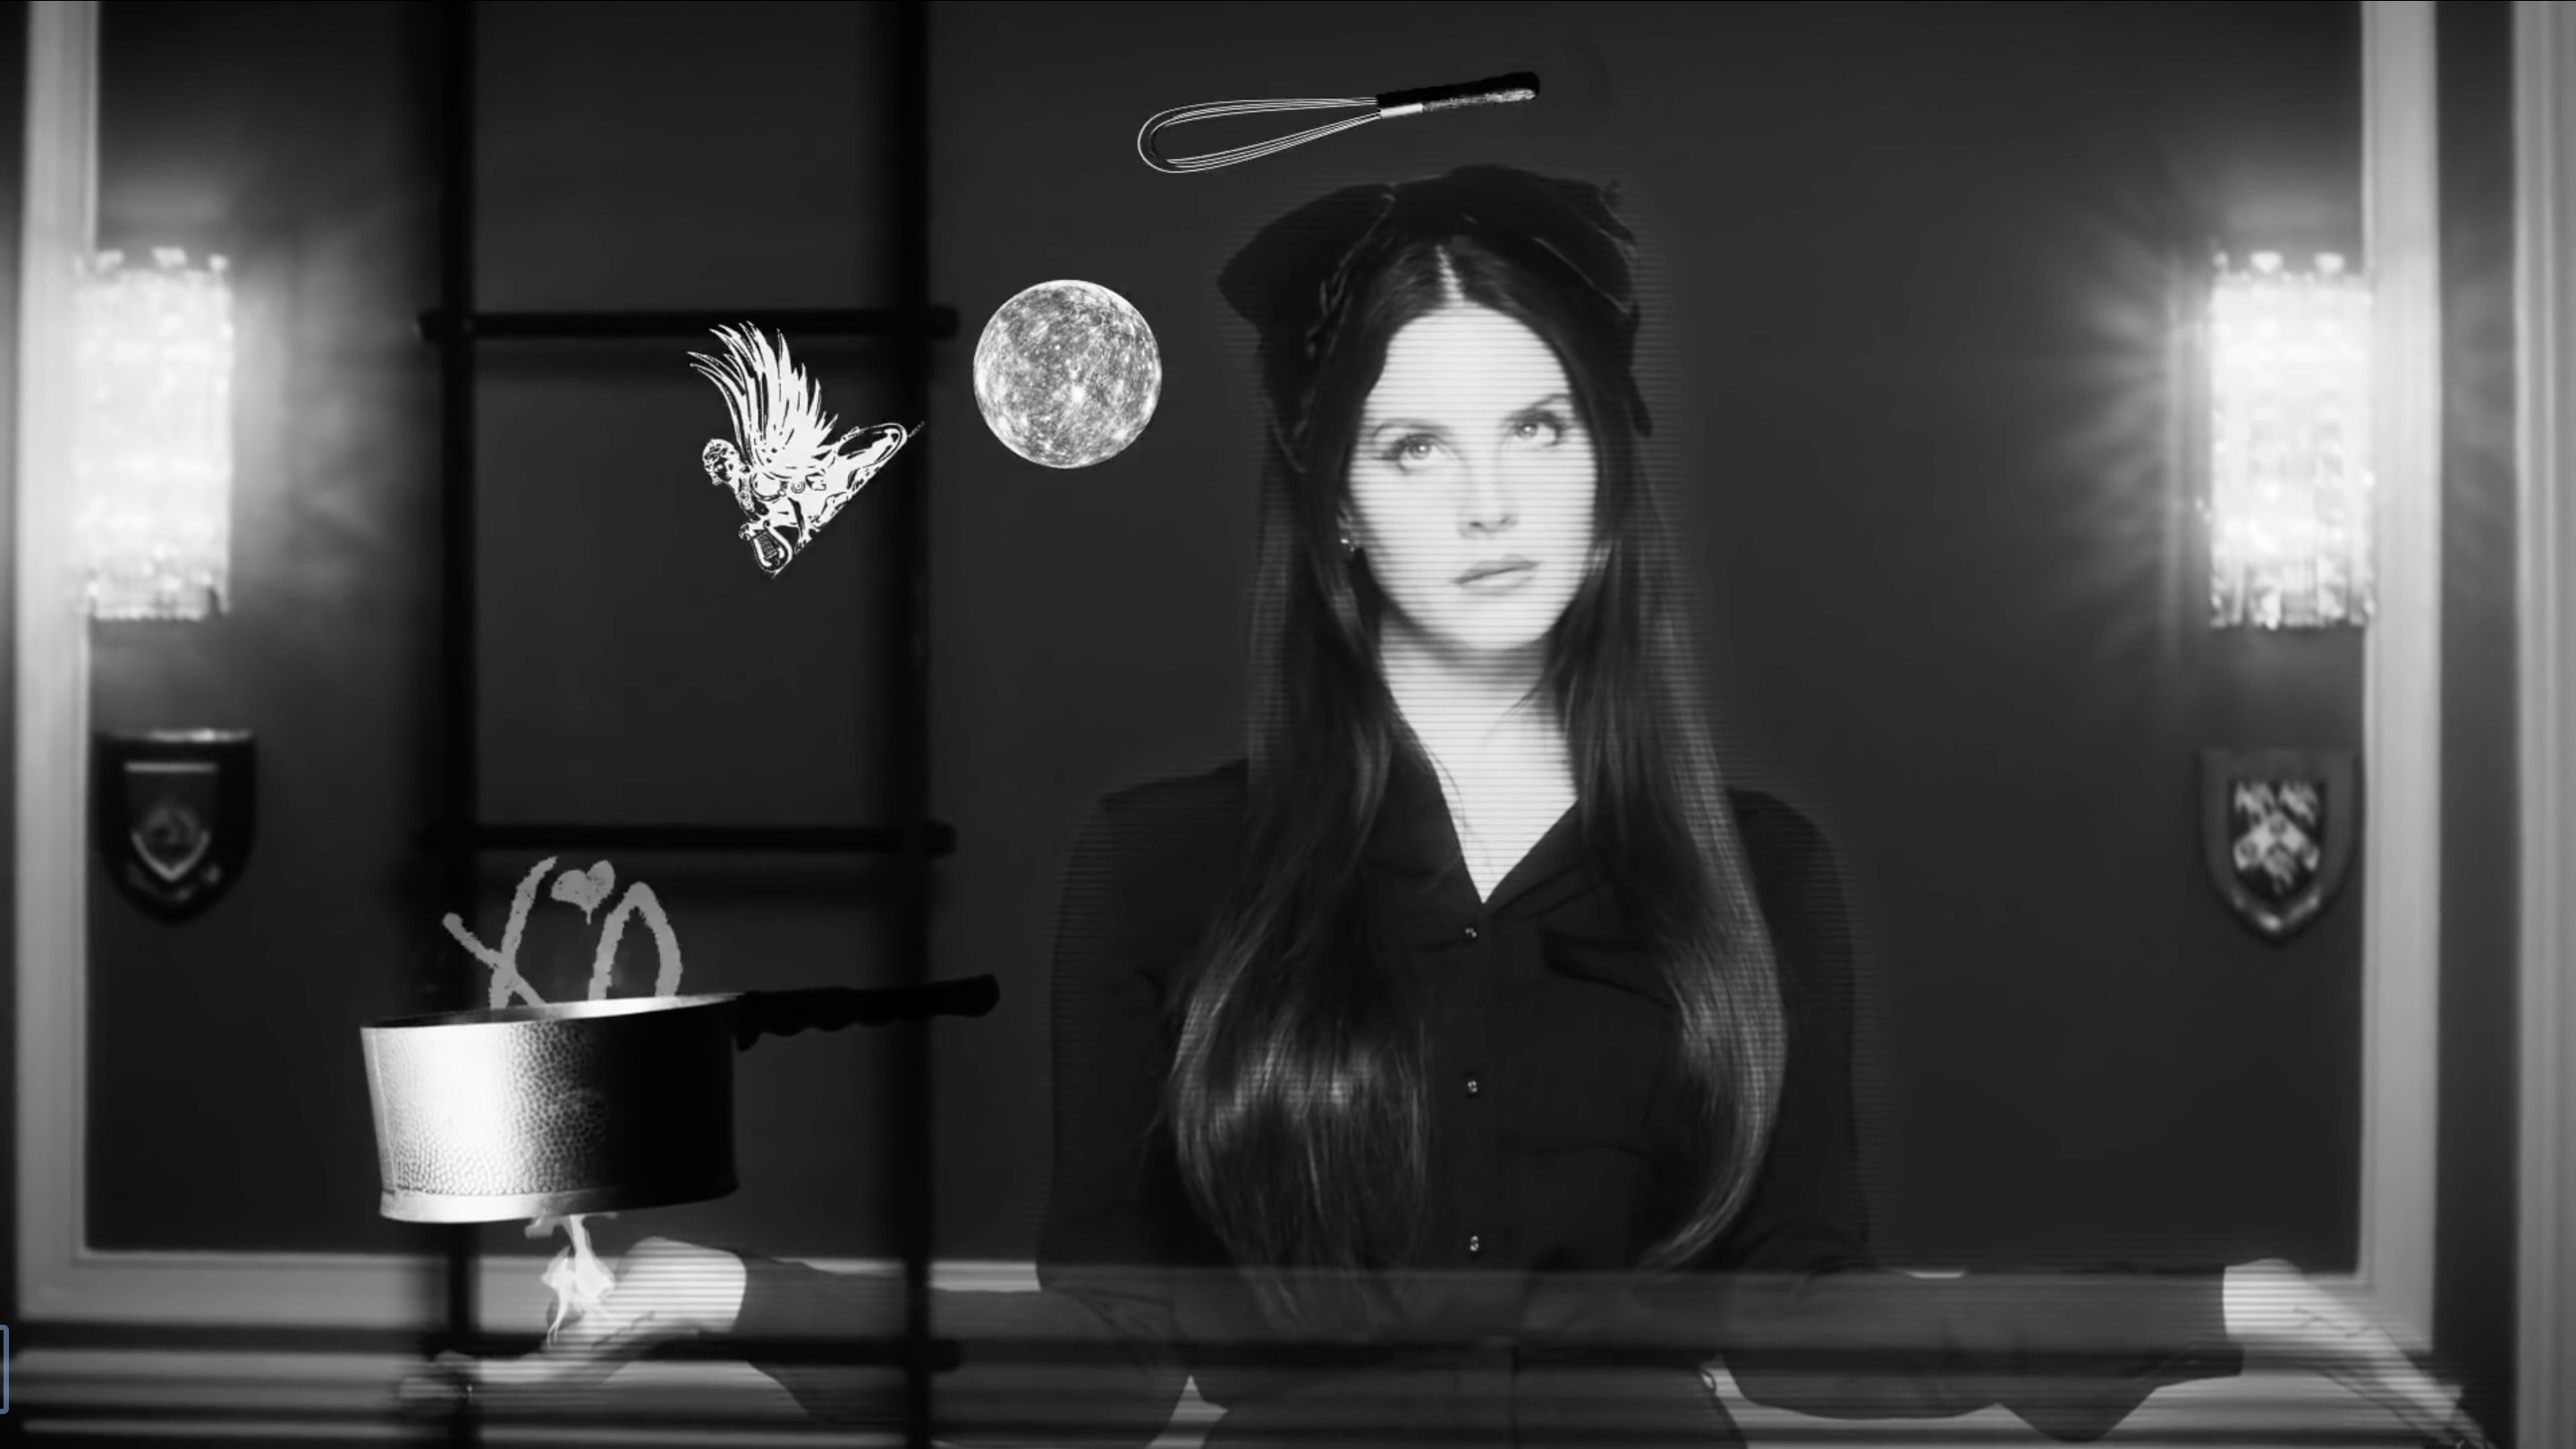 lana del rey helped cast a spell on trump